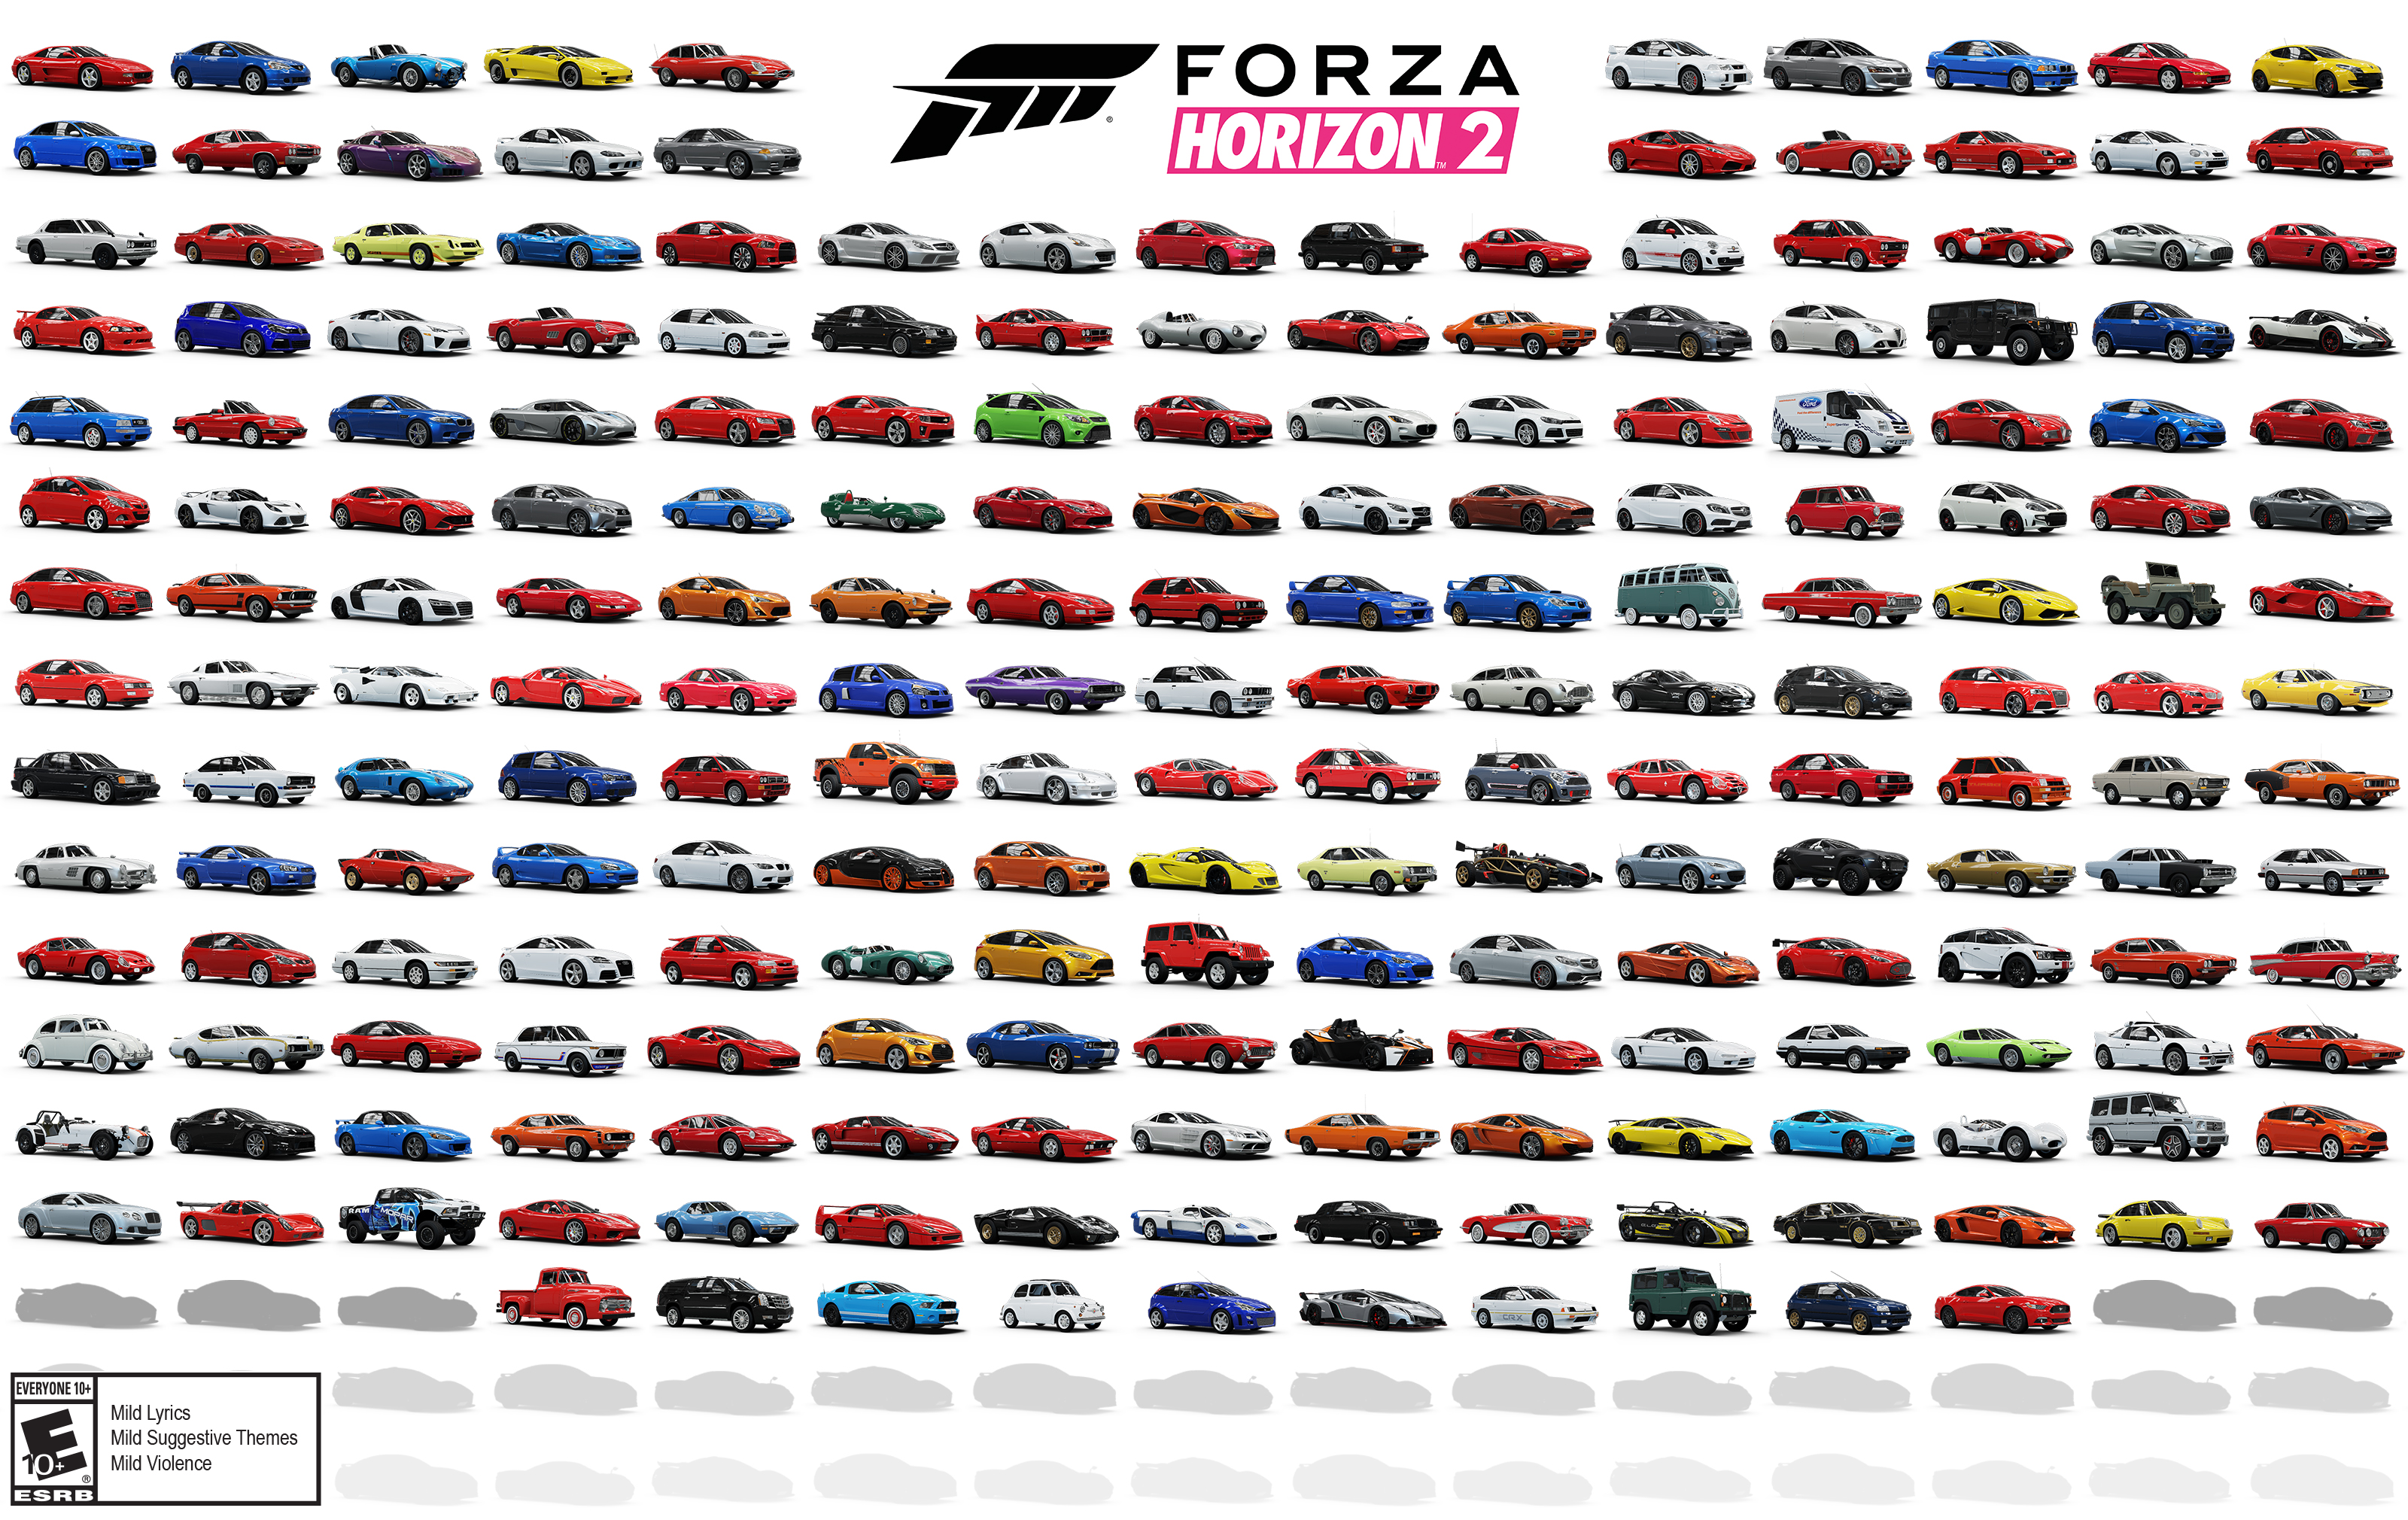 Full Forza Horizon 2 Car List Revealed | Racing Game Central